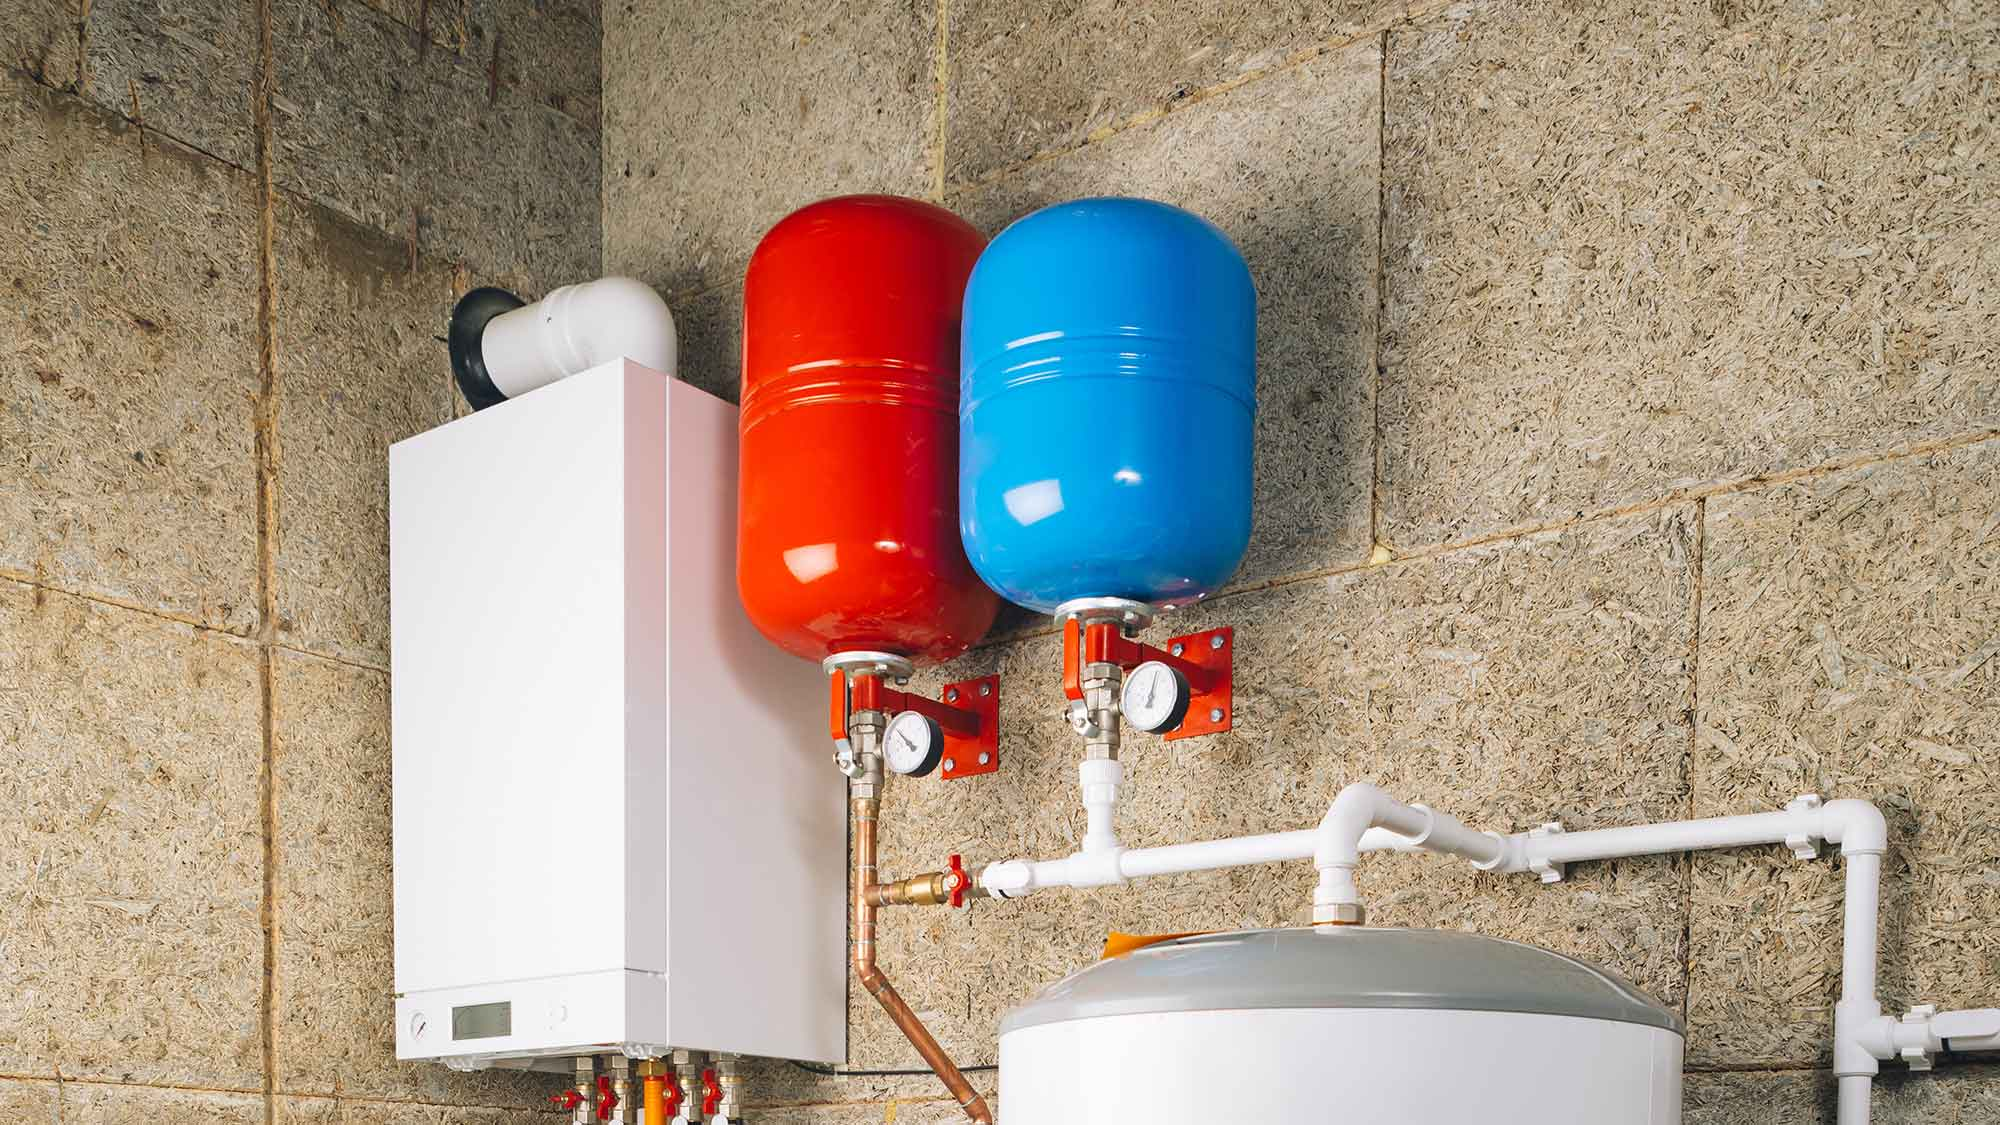 commercial boiler servicing essex maintenance leigh on sea example